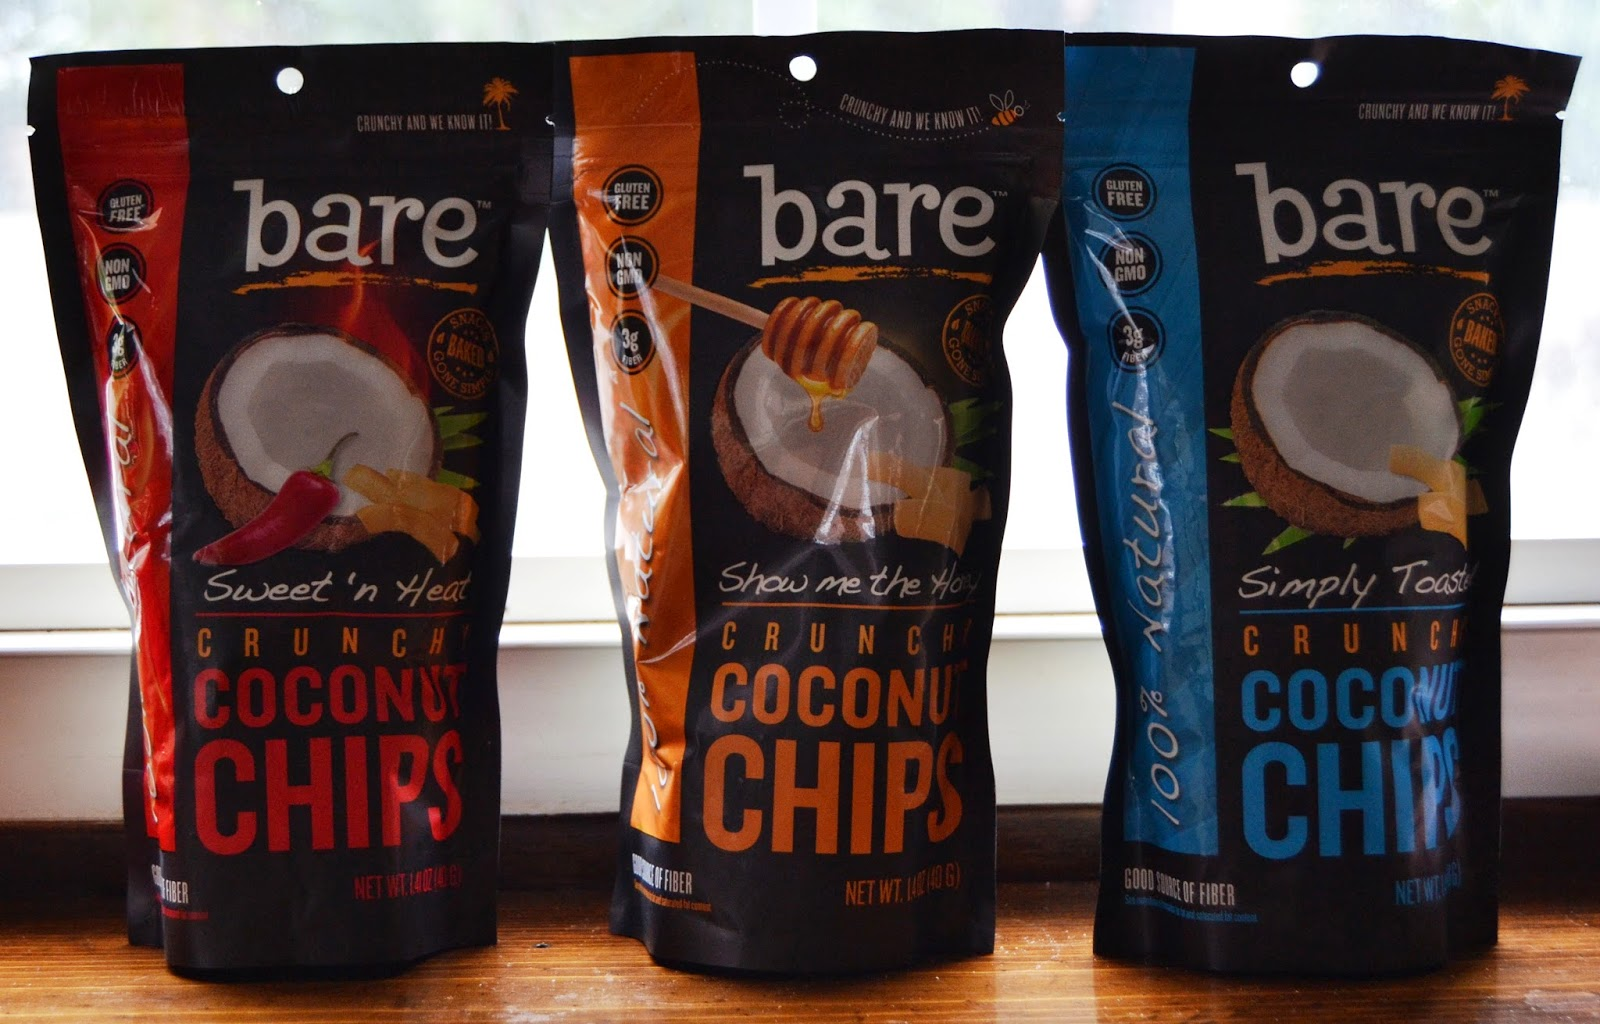 Bare Crunchy Coconut Chips